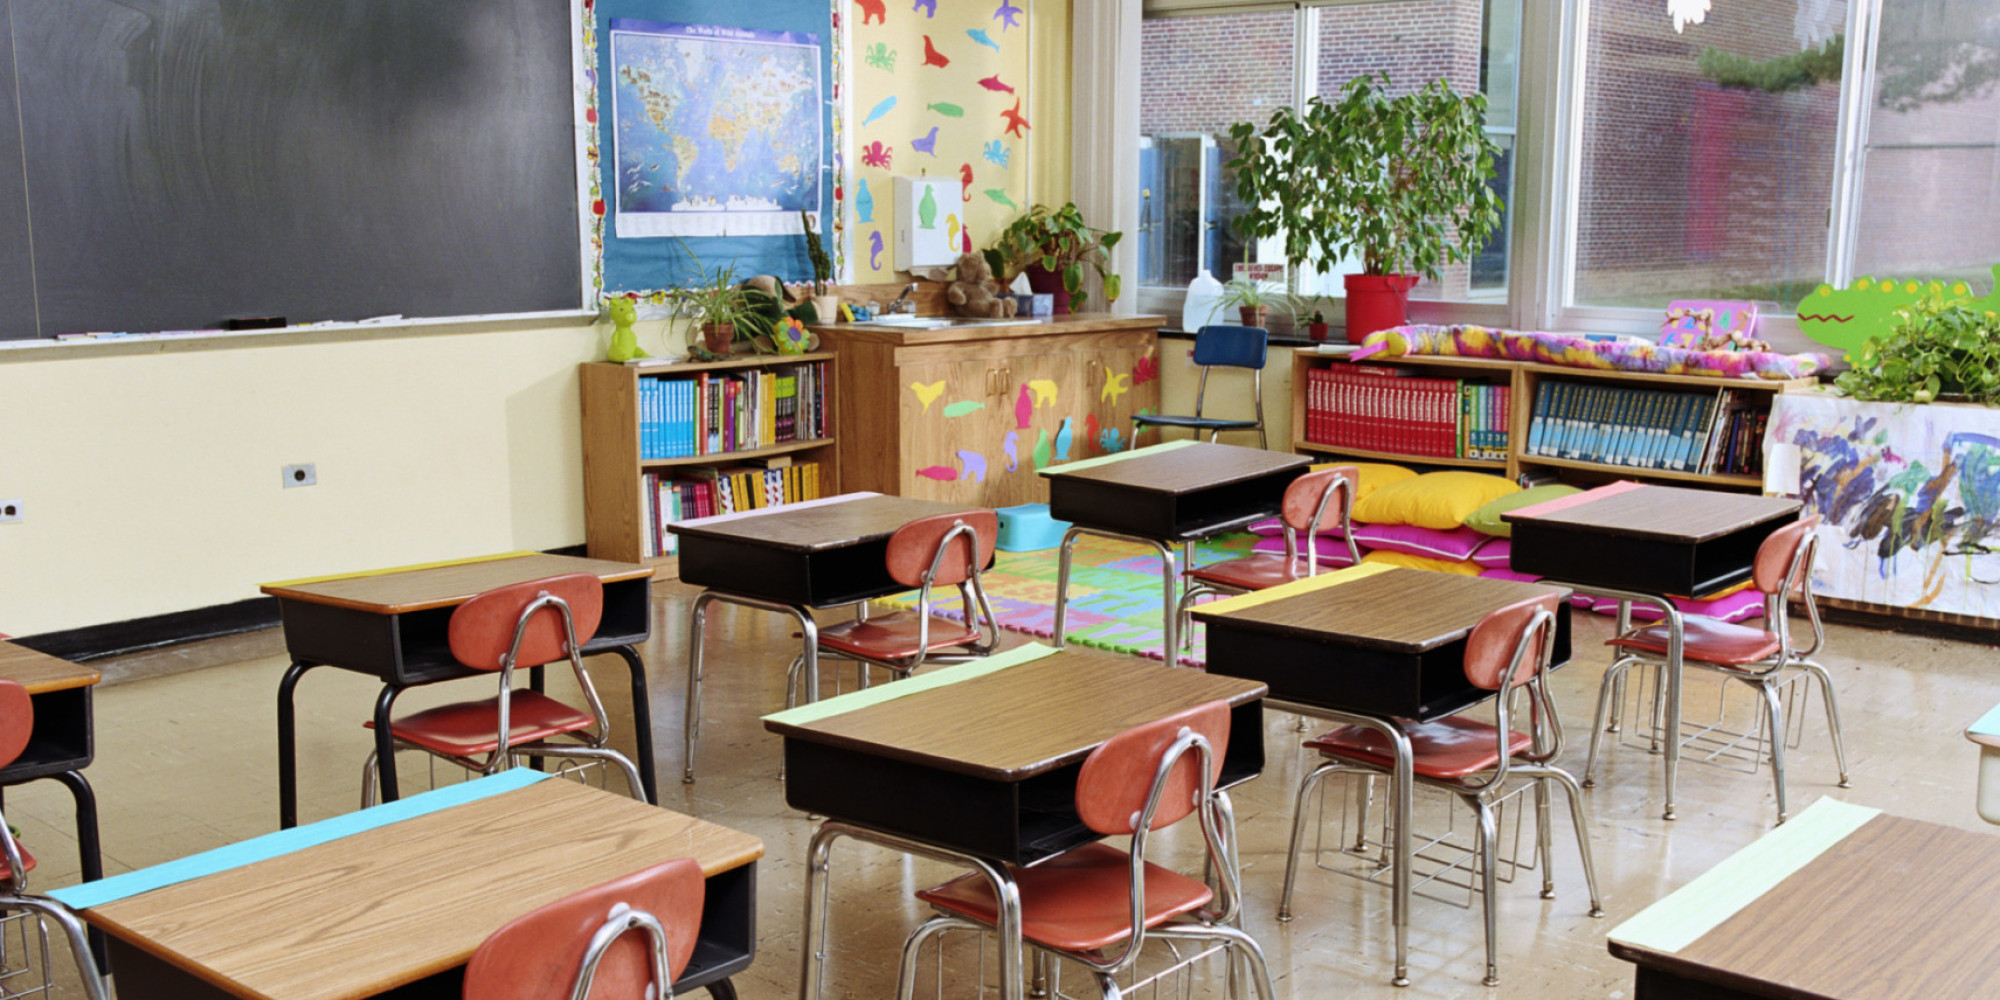 Innovative Science Classroom Design ~ We need innovative ways to fund early childhood education